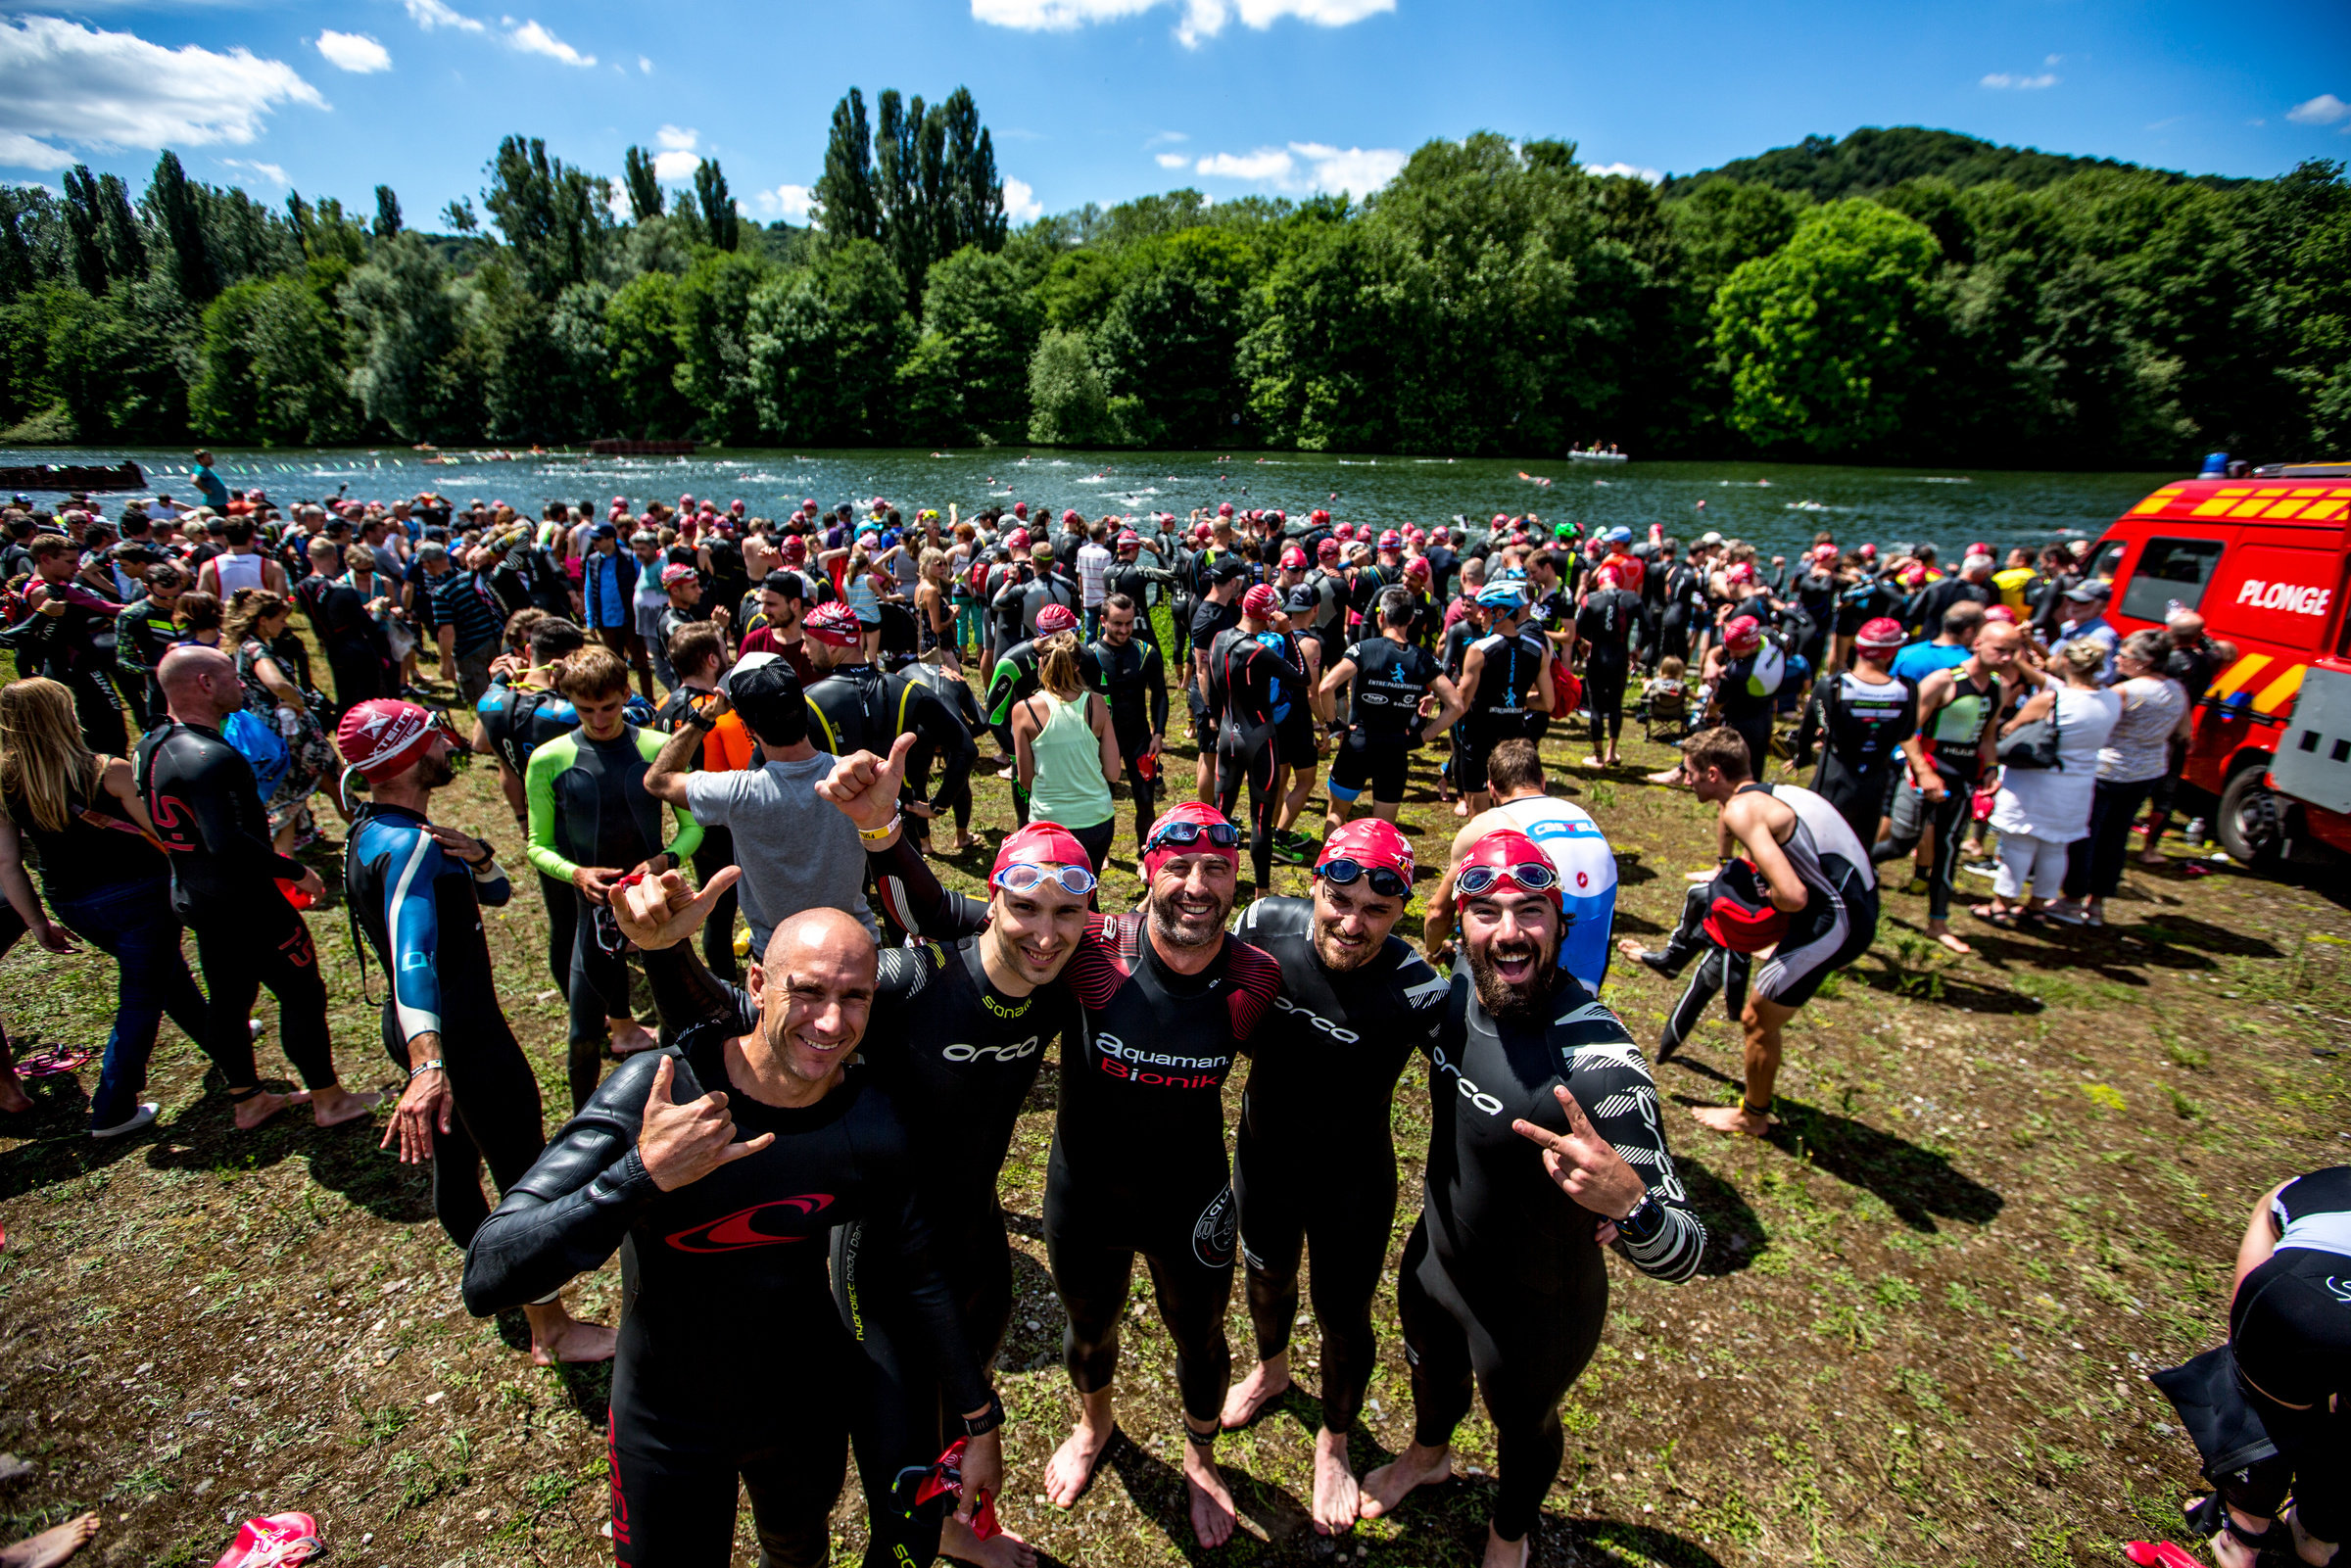 ICARUS SPORTS TO COVER OFF-ROAD TRIATHLON AT XTERRA BELGIUM